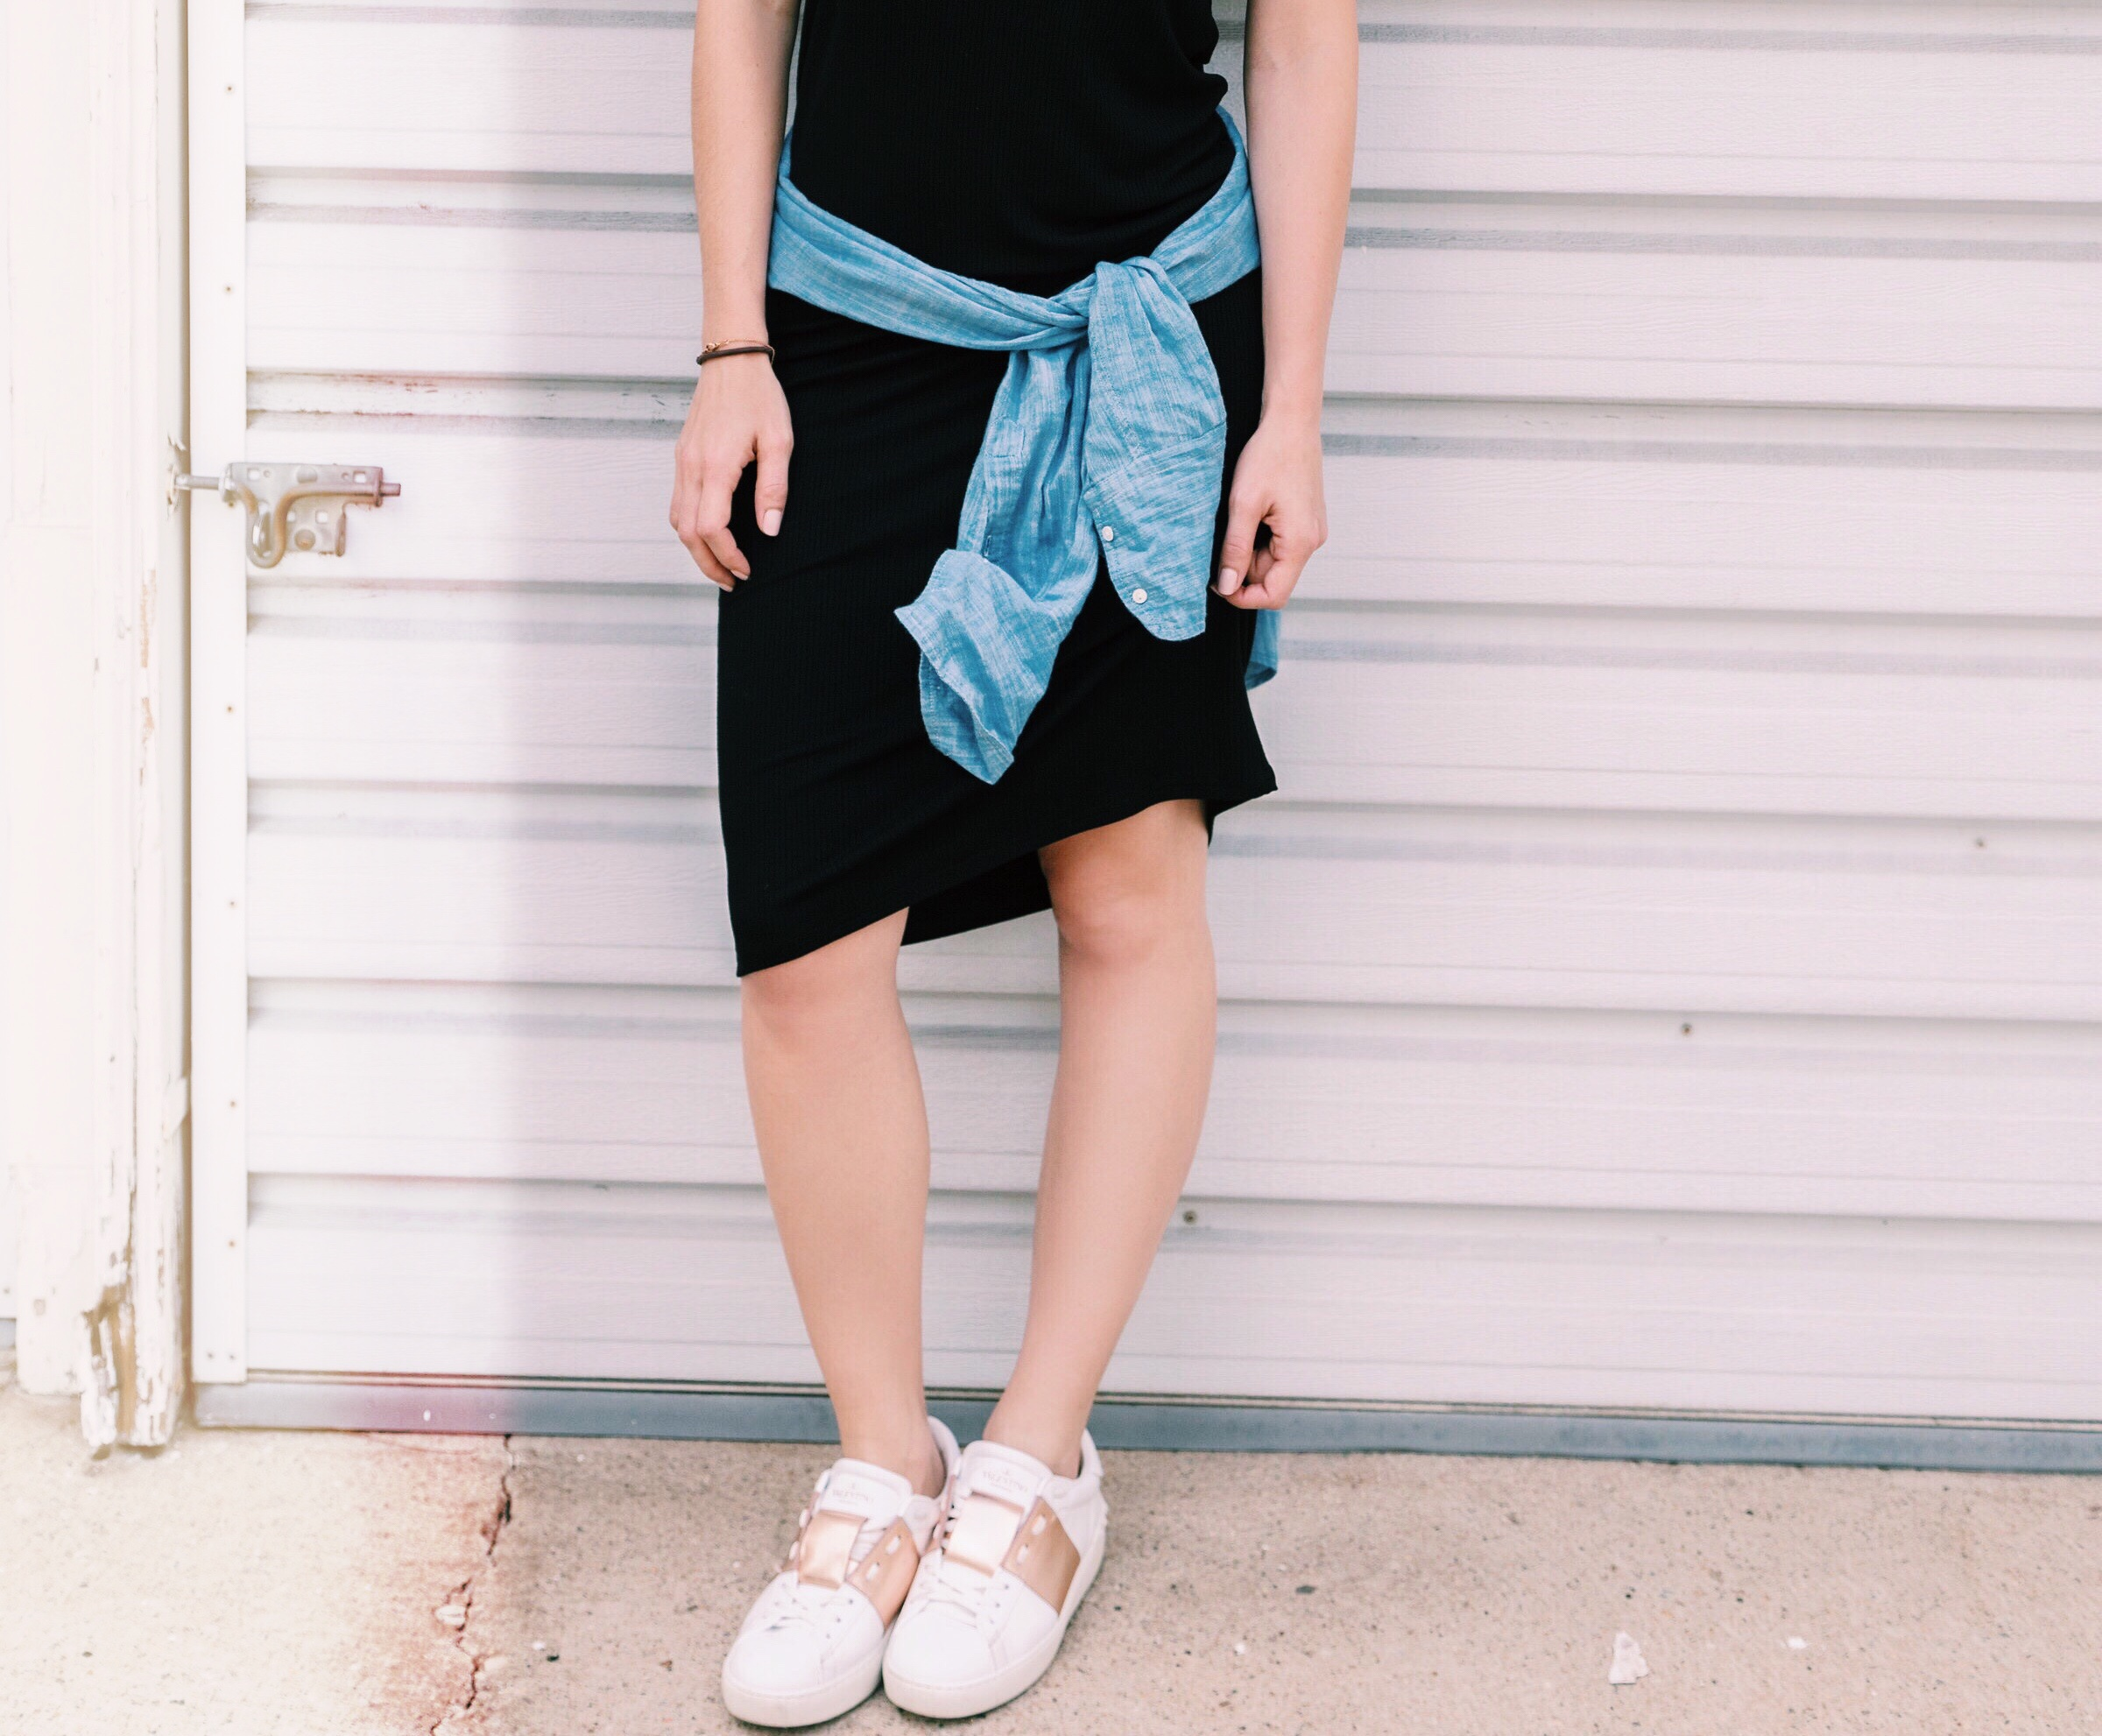 sneakers, summer style, summer fashion, summer sneakers, summer tennies, comfortable footwear, comfortable shoes, cute tennis shoes